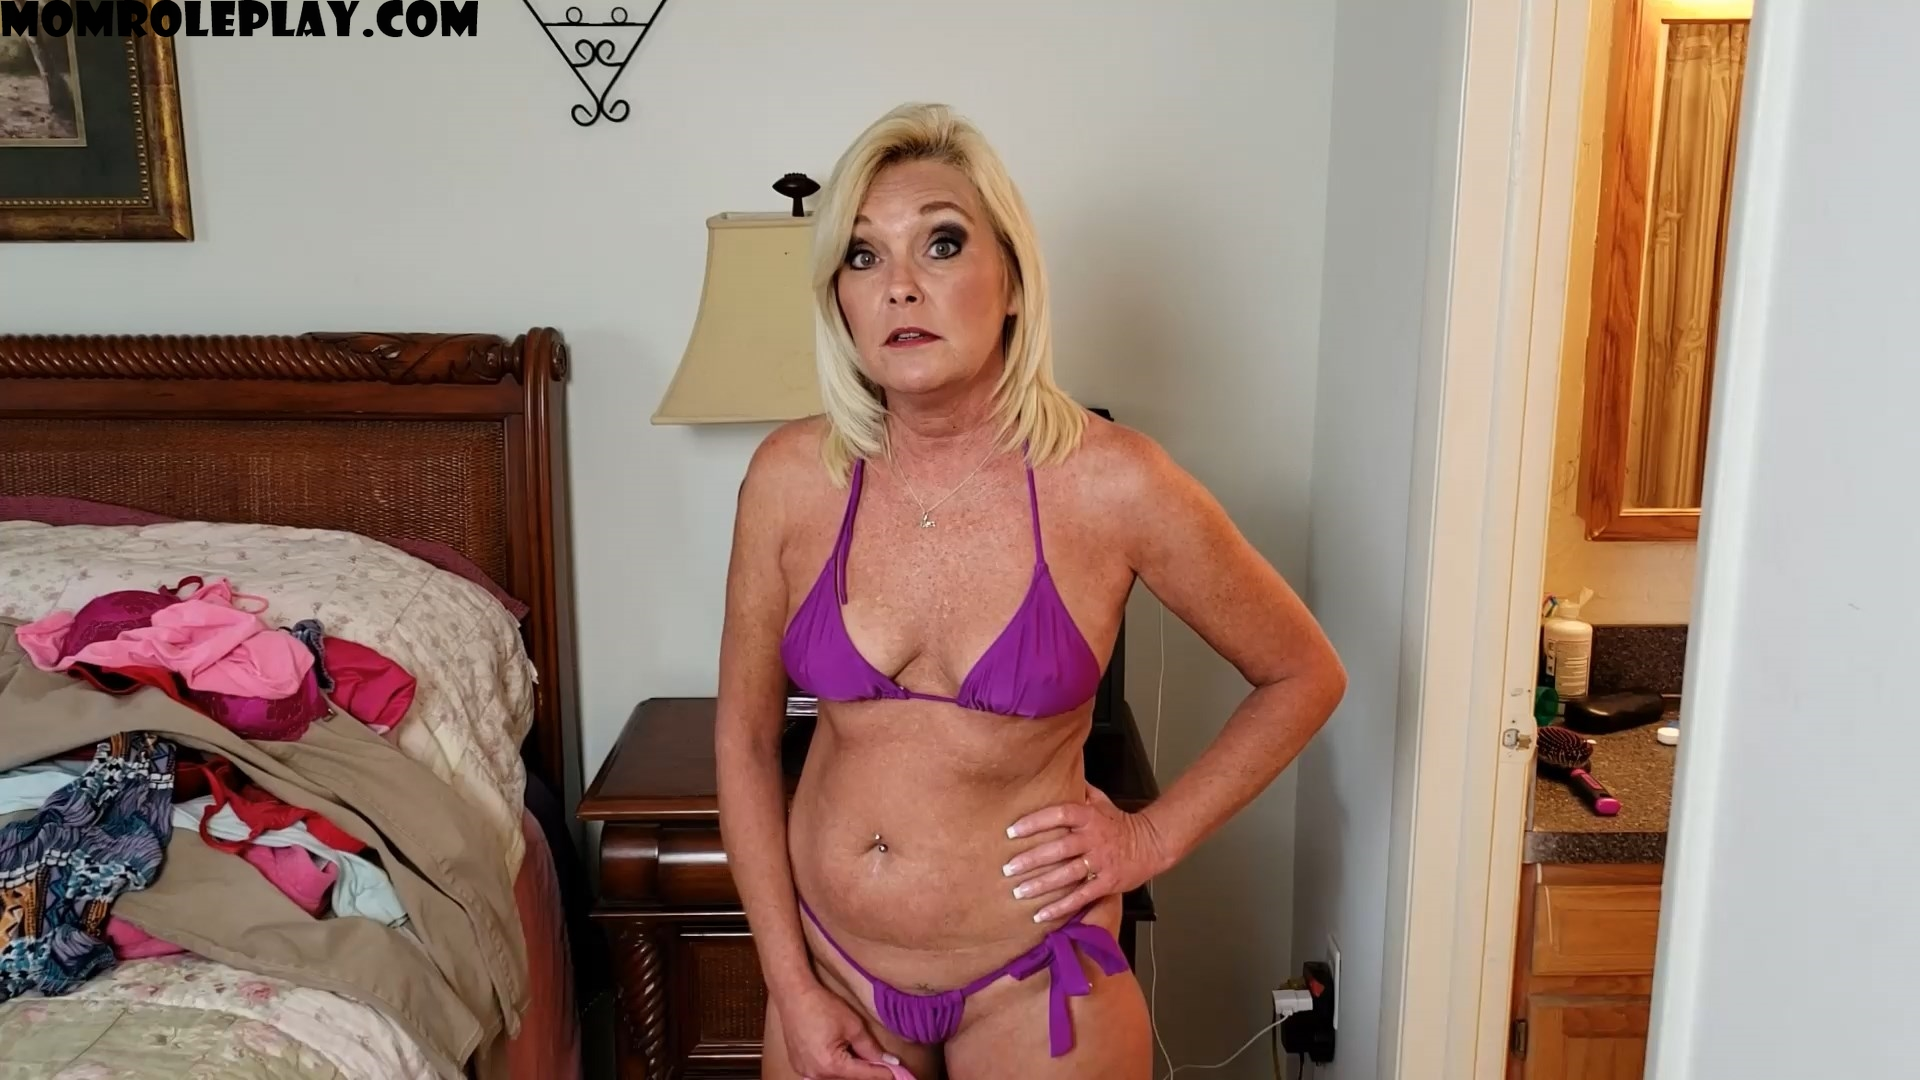 Ms Paris Rose - Mommy Son and Daughter's Panties 1080p